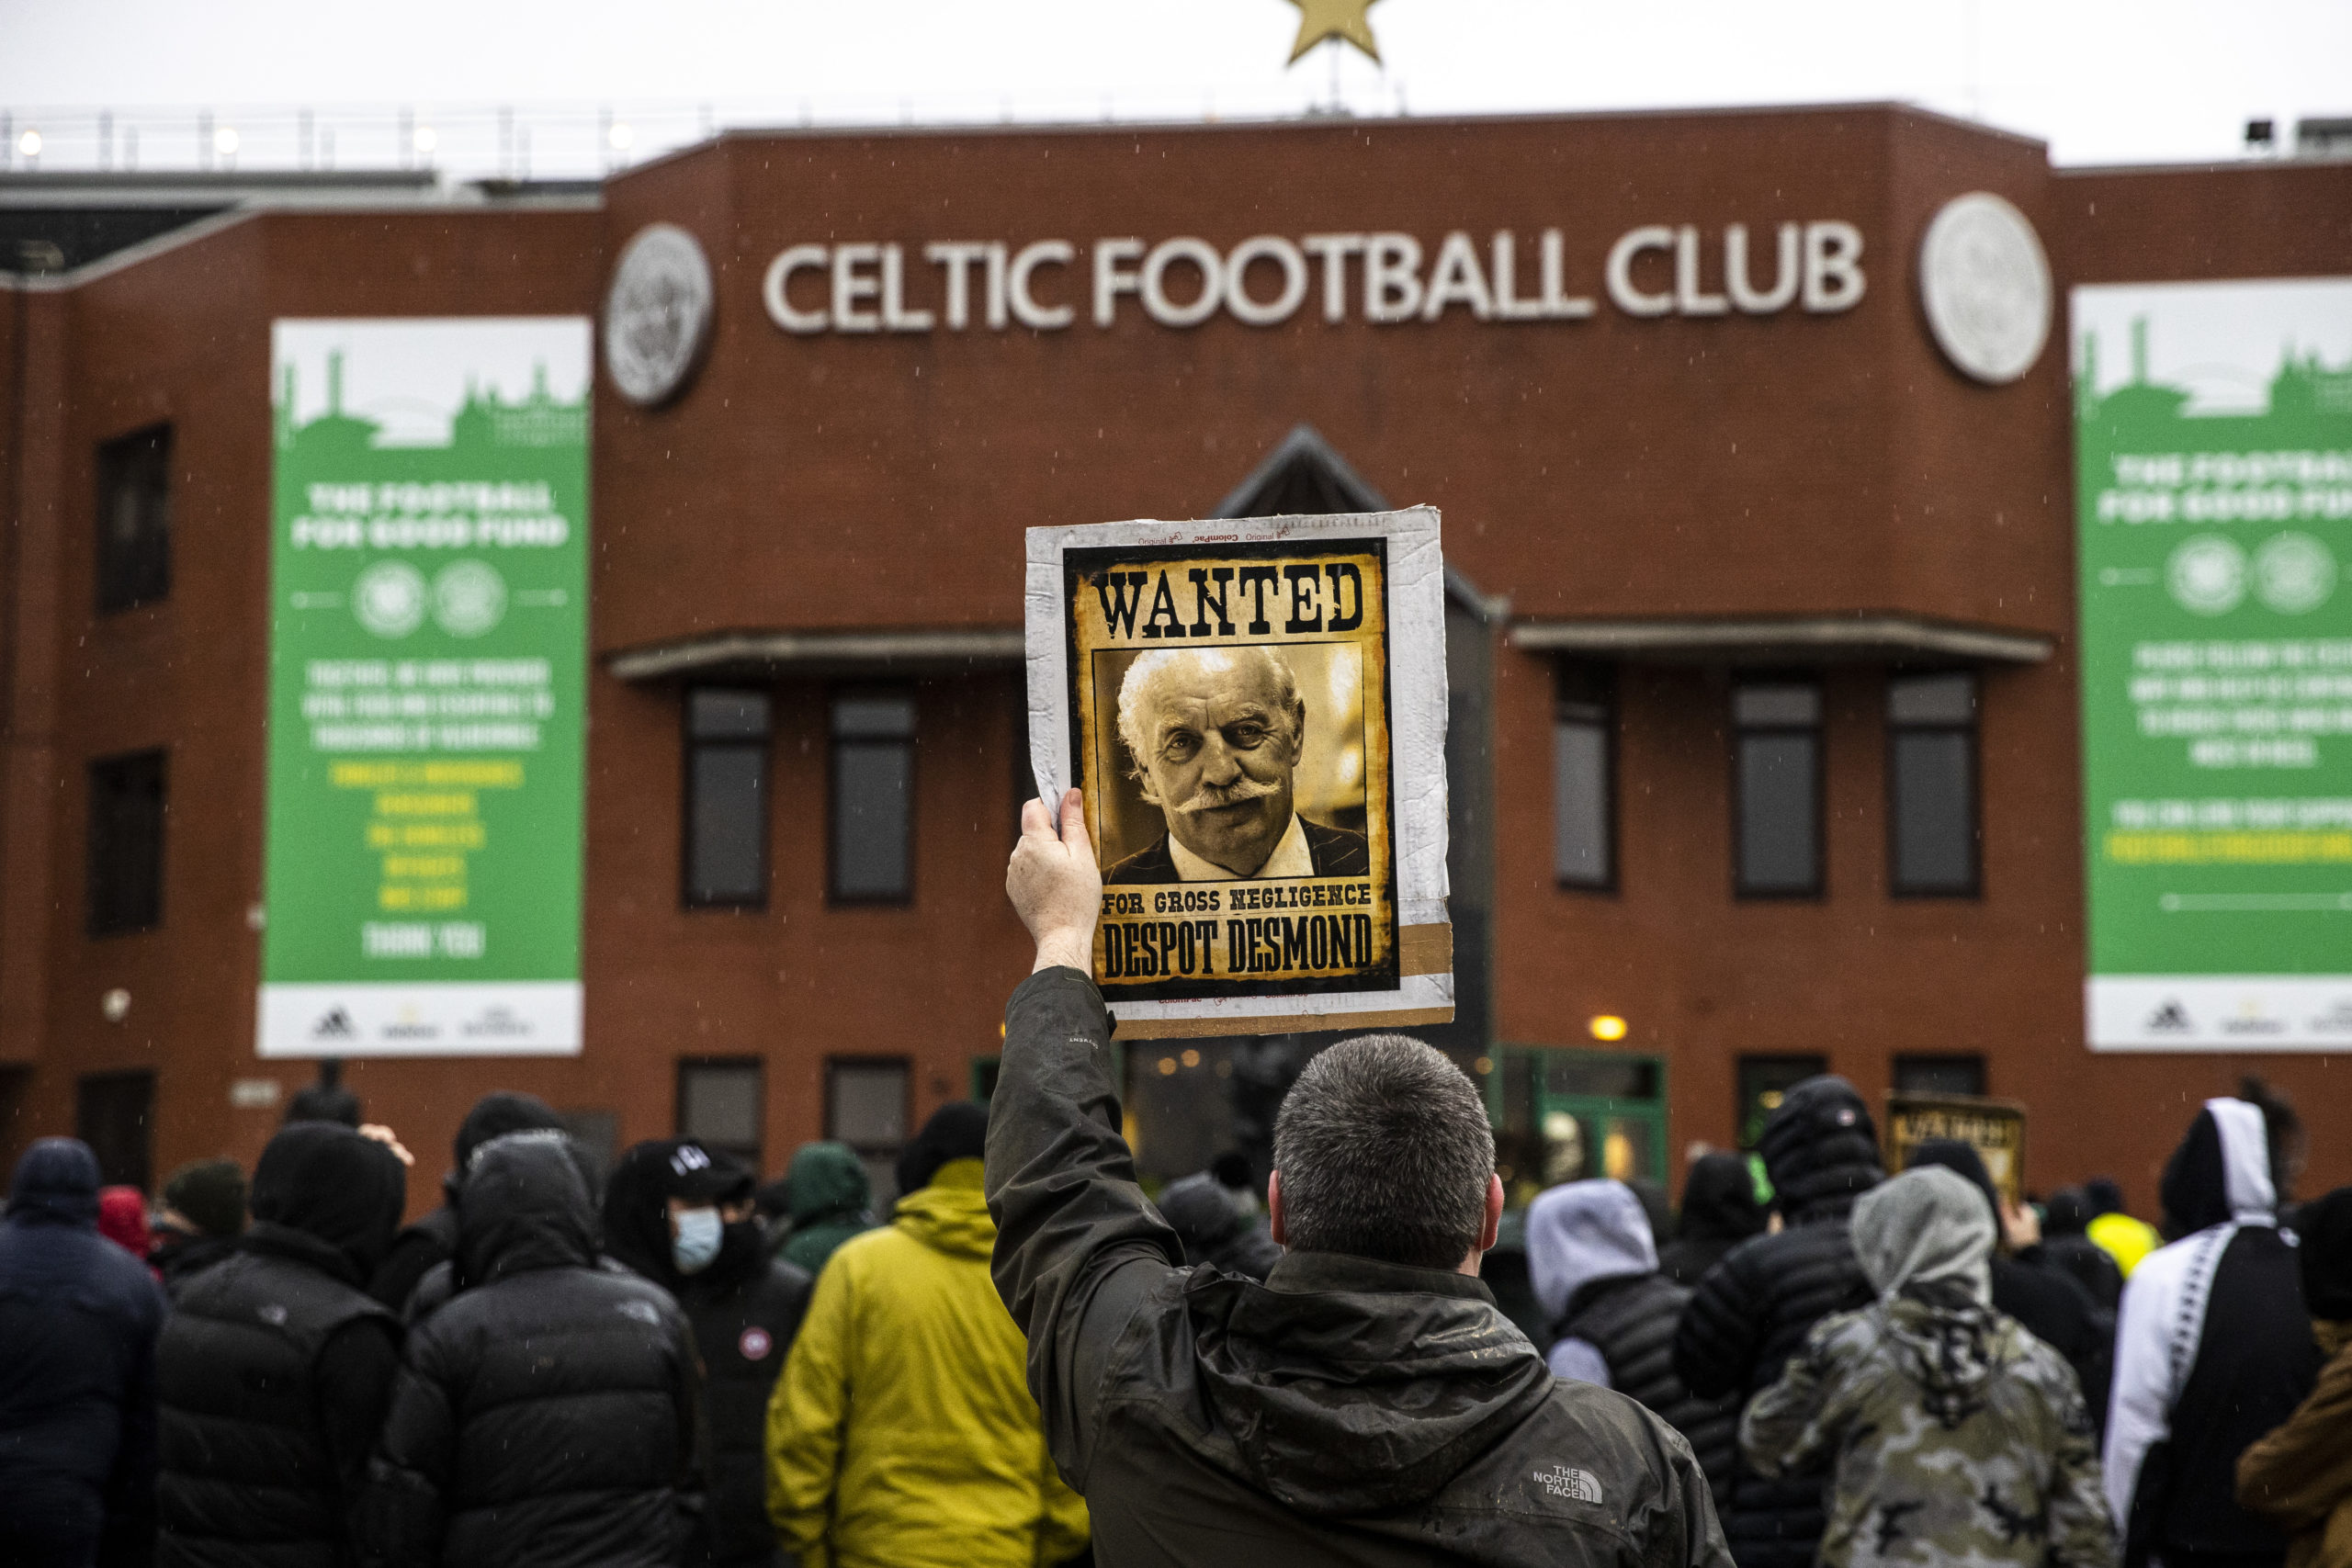 Former BBC man compares current board to disastrous 90s regime; says Celtic has lost its soul